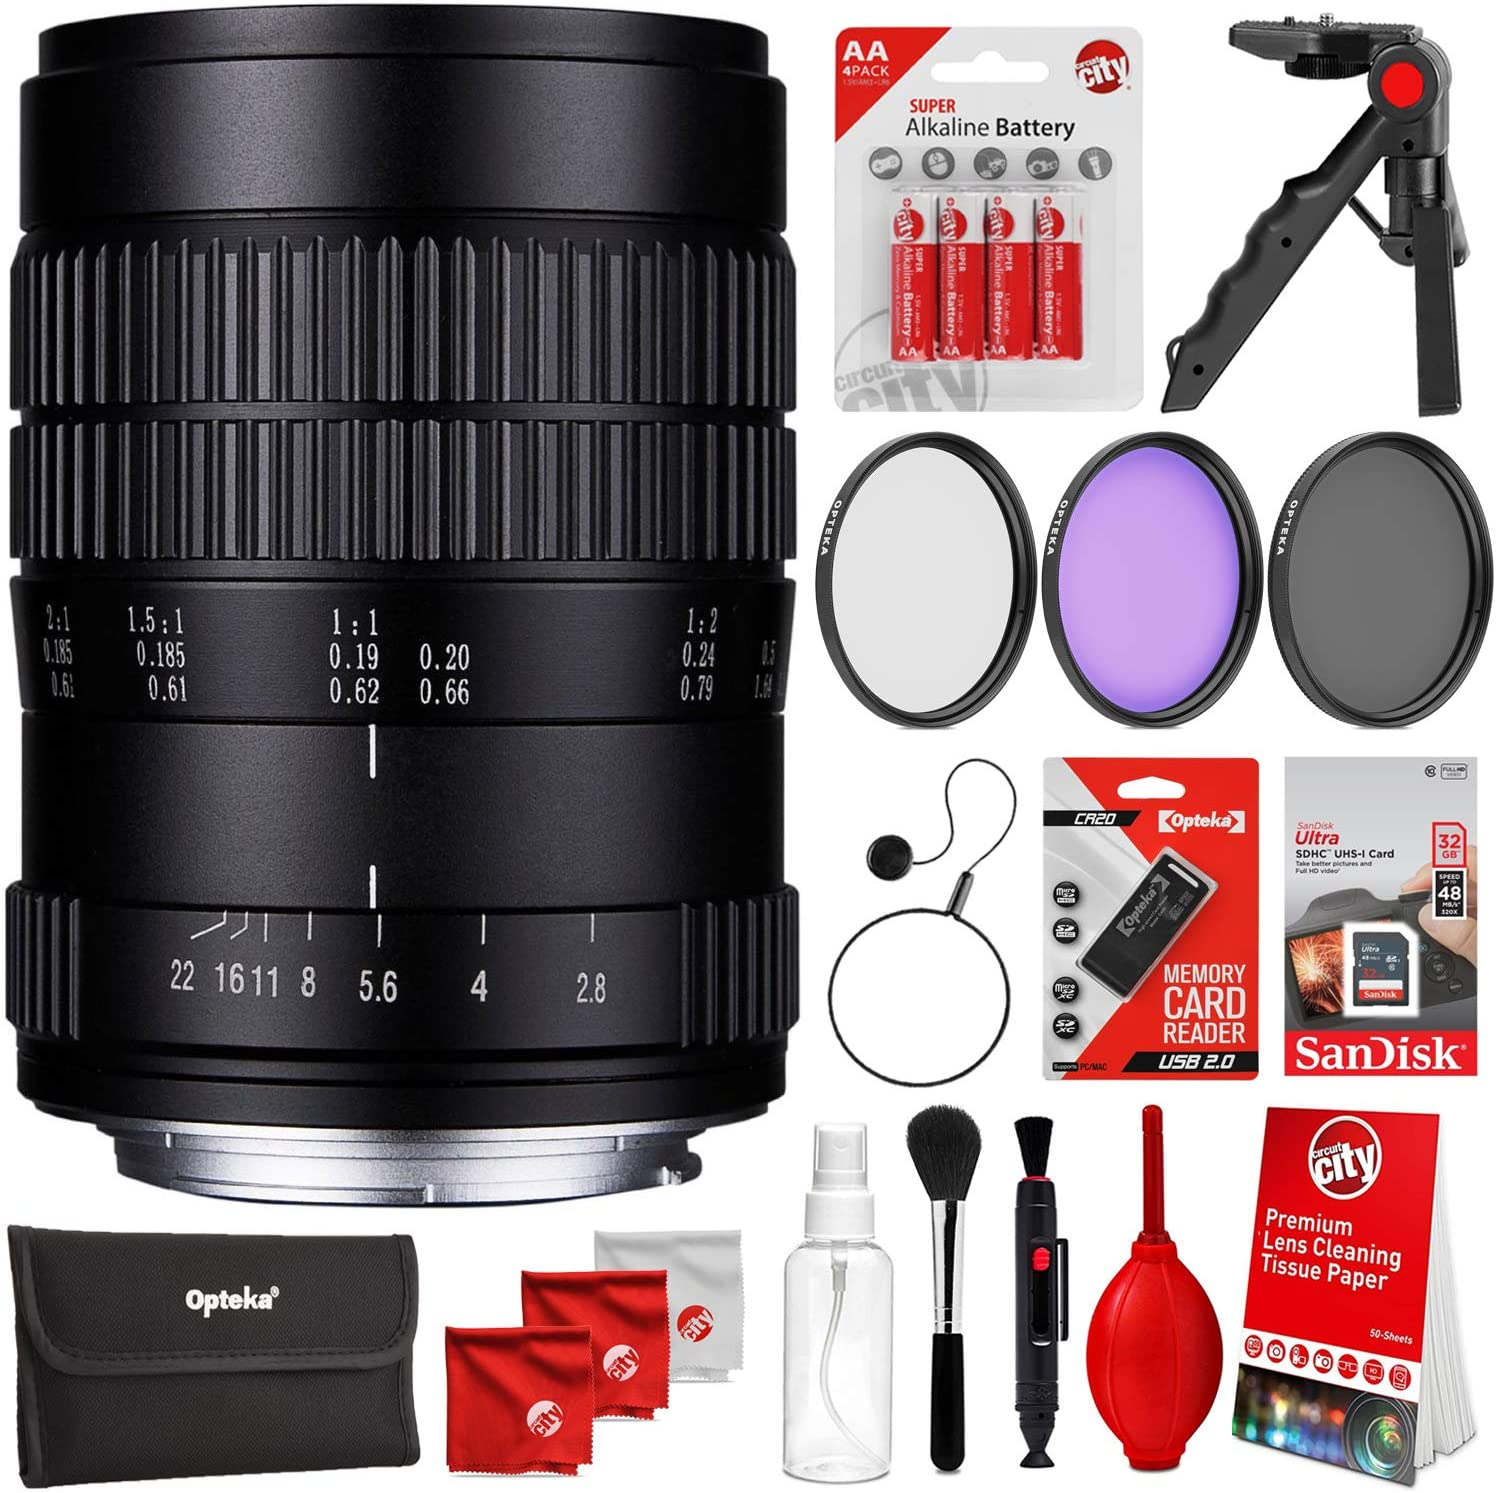 Oshiro 60mm f//2.8 2:1 LD UNC Full Frame Ultra-Macro Lens for Nikon DSLR Cameras Bundle with SanDisk Ultra 32GB SDHC SDXC SD Class 10 48MB//s 320x Memory Card and Accessories 7 Items